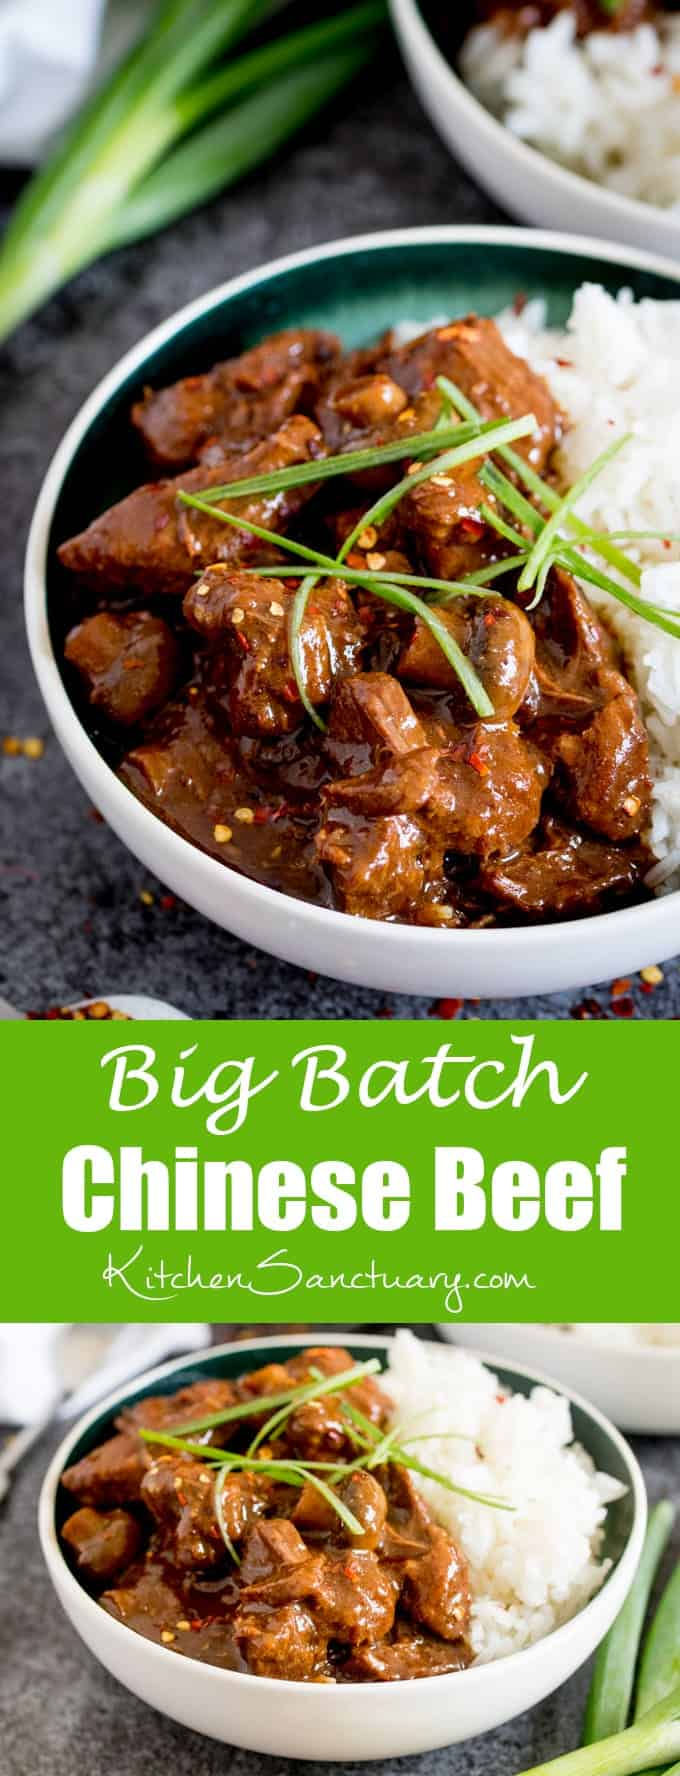 Big Batch Chinese Beef - A tasty, make-ahead meal of slow-cooked saucy Chinese beef. Perfect when you're cooking for a crowd! #Chinese #Beef #Cookingforacrowd #bigbatch